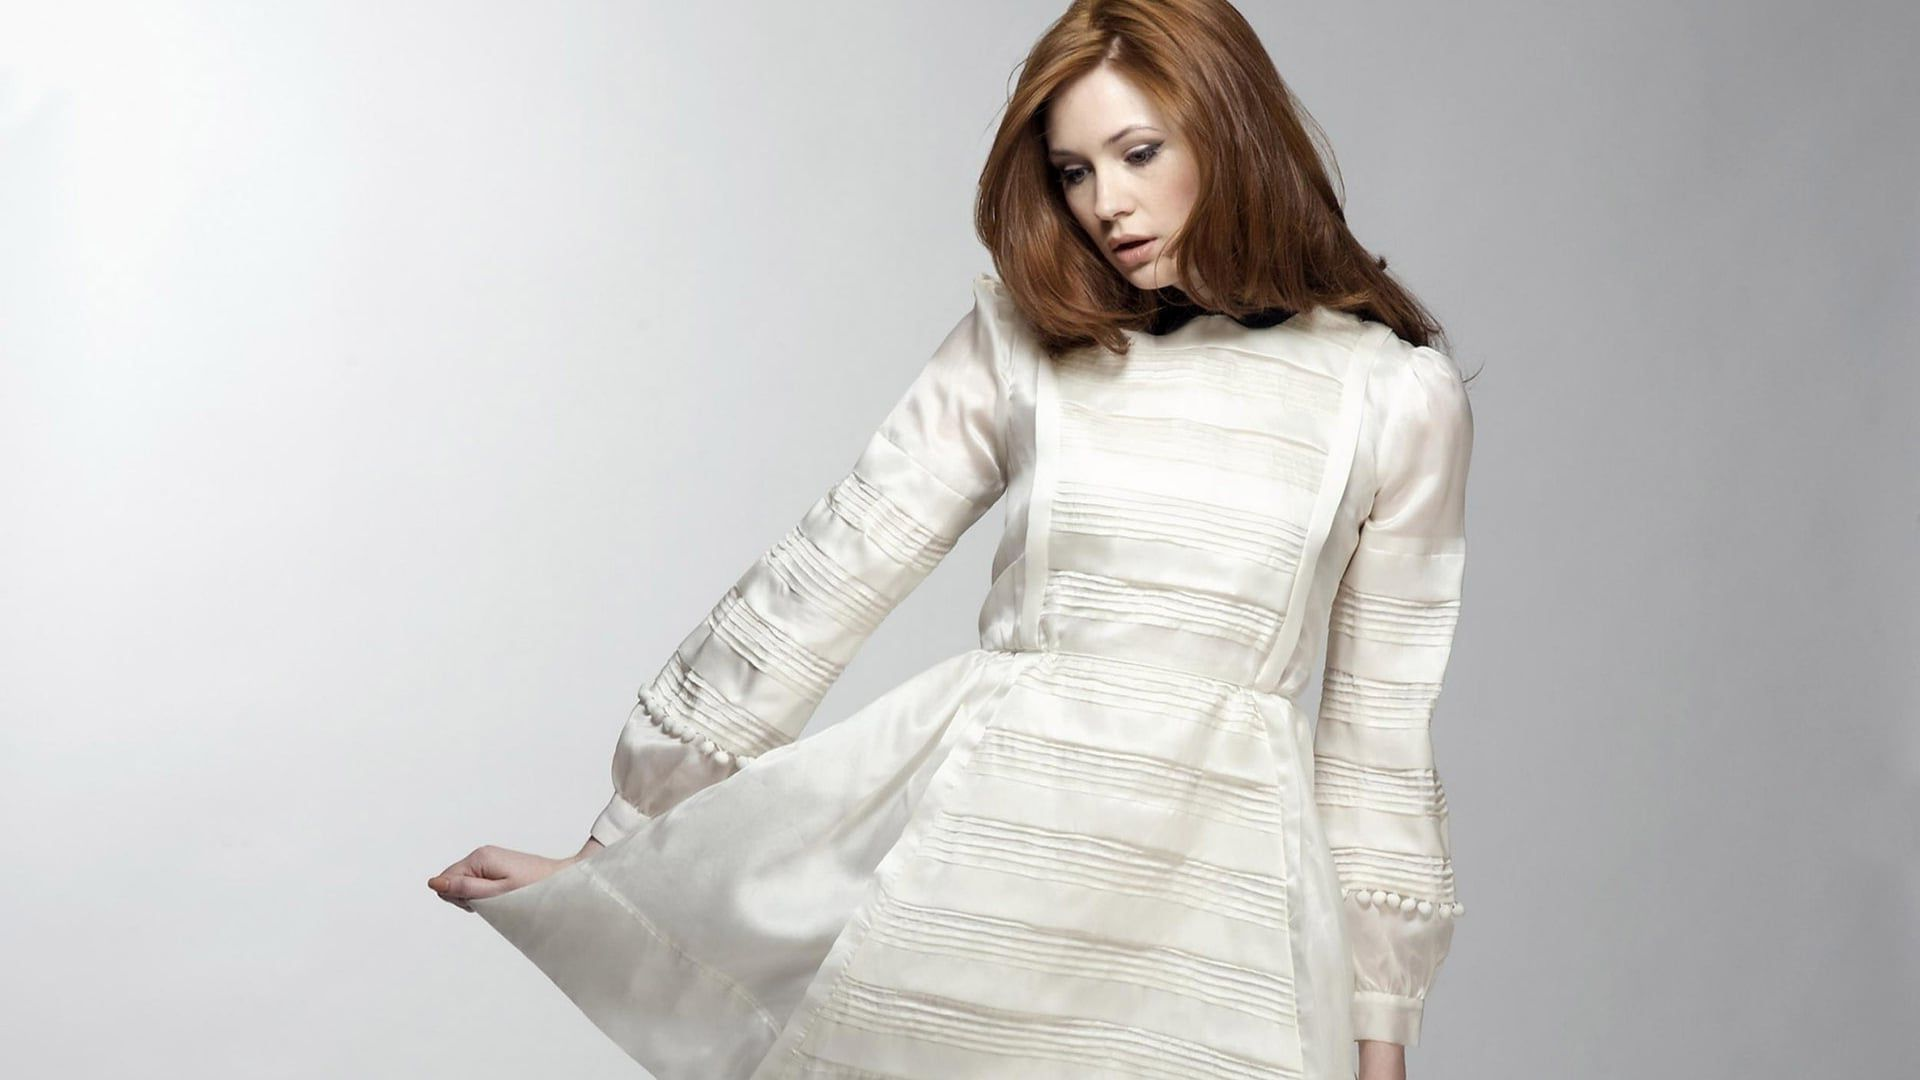 Full HD pics of Karen Gillan